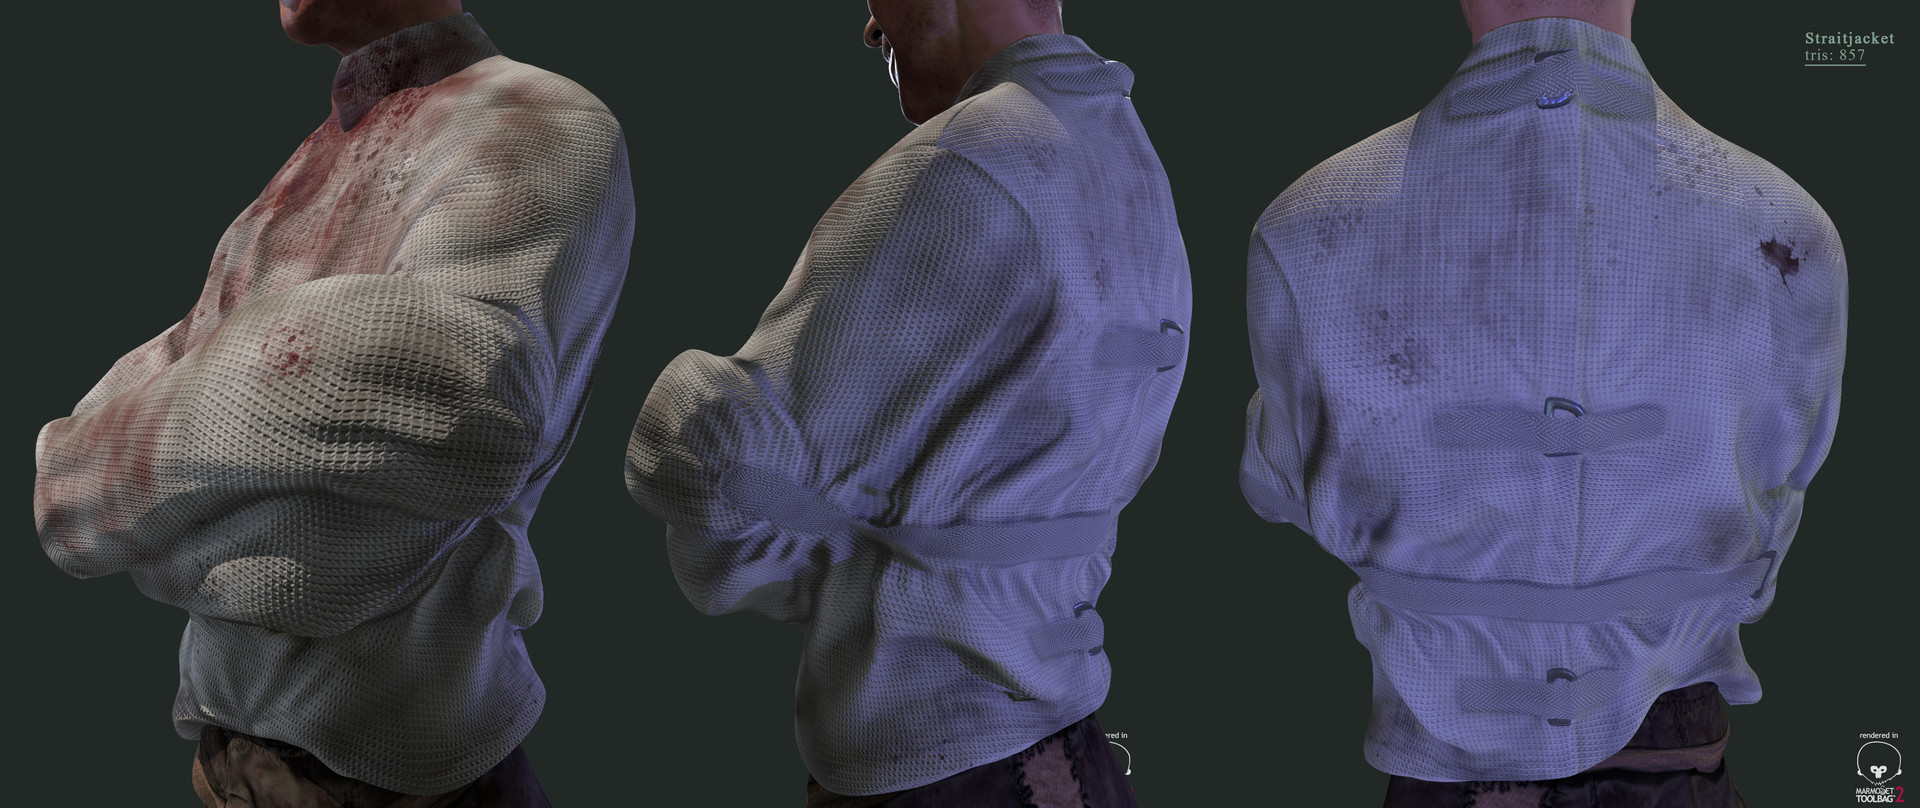 ArtStation - Straight Jacket Low Poly, Wellington Weishaupt